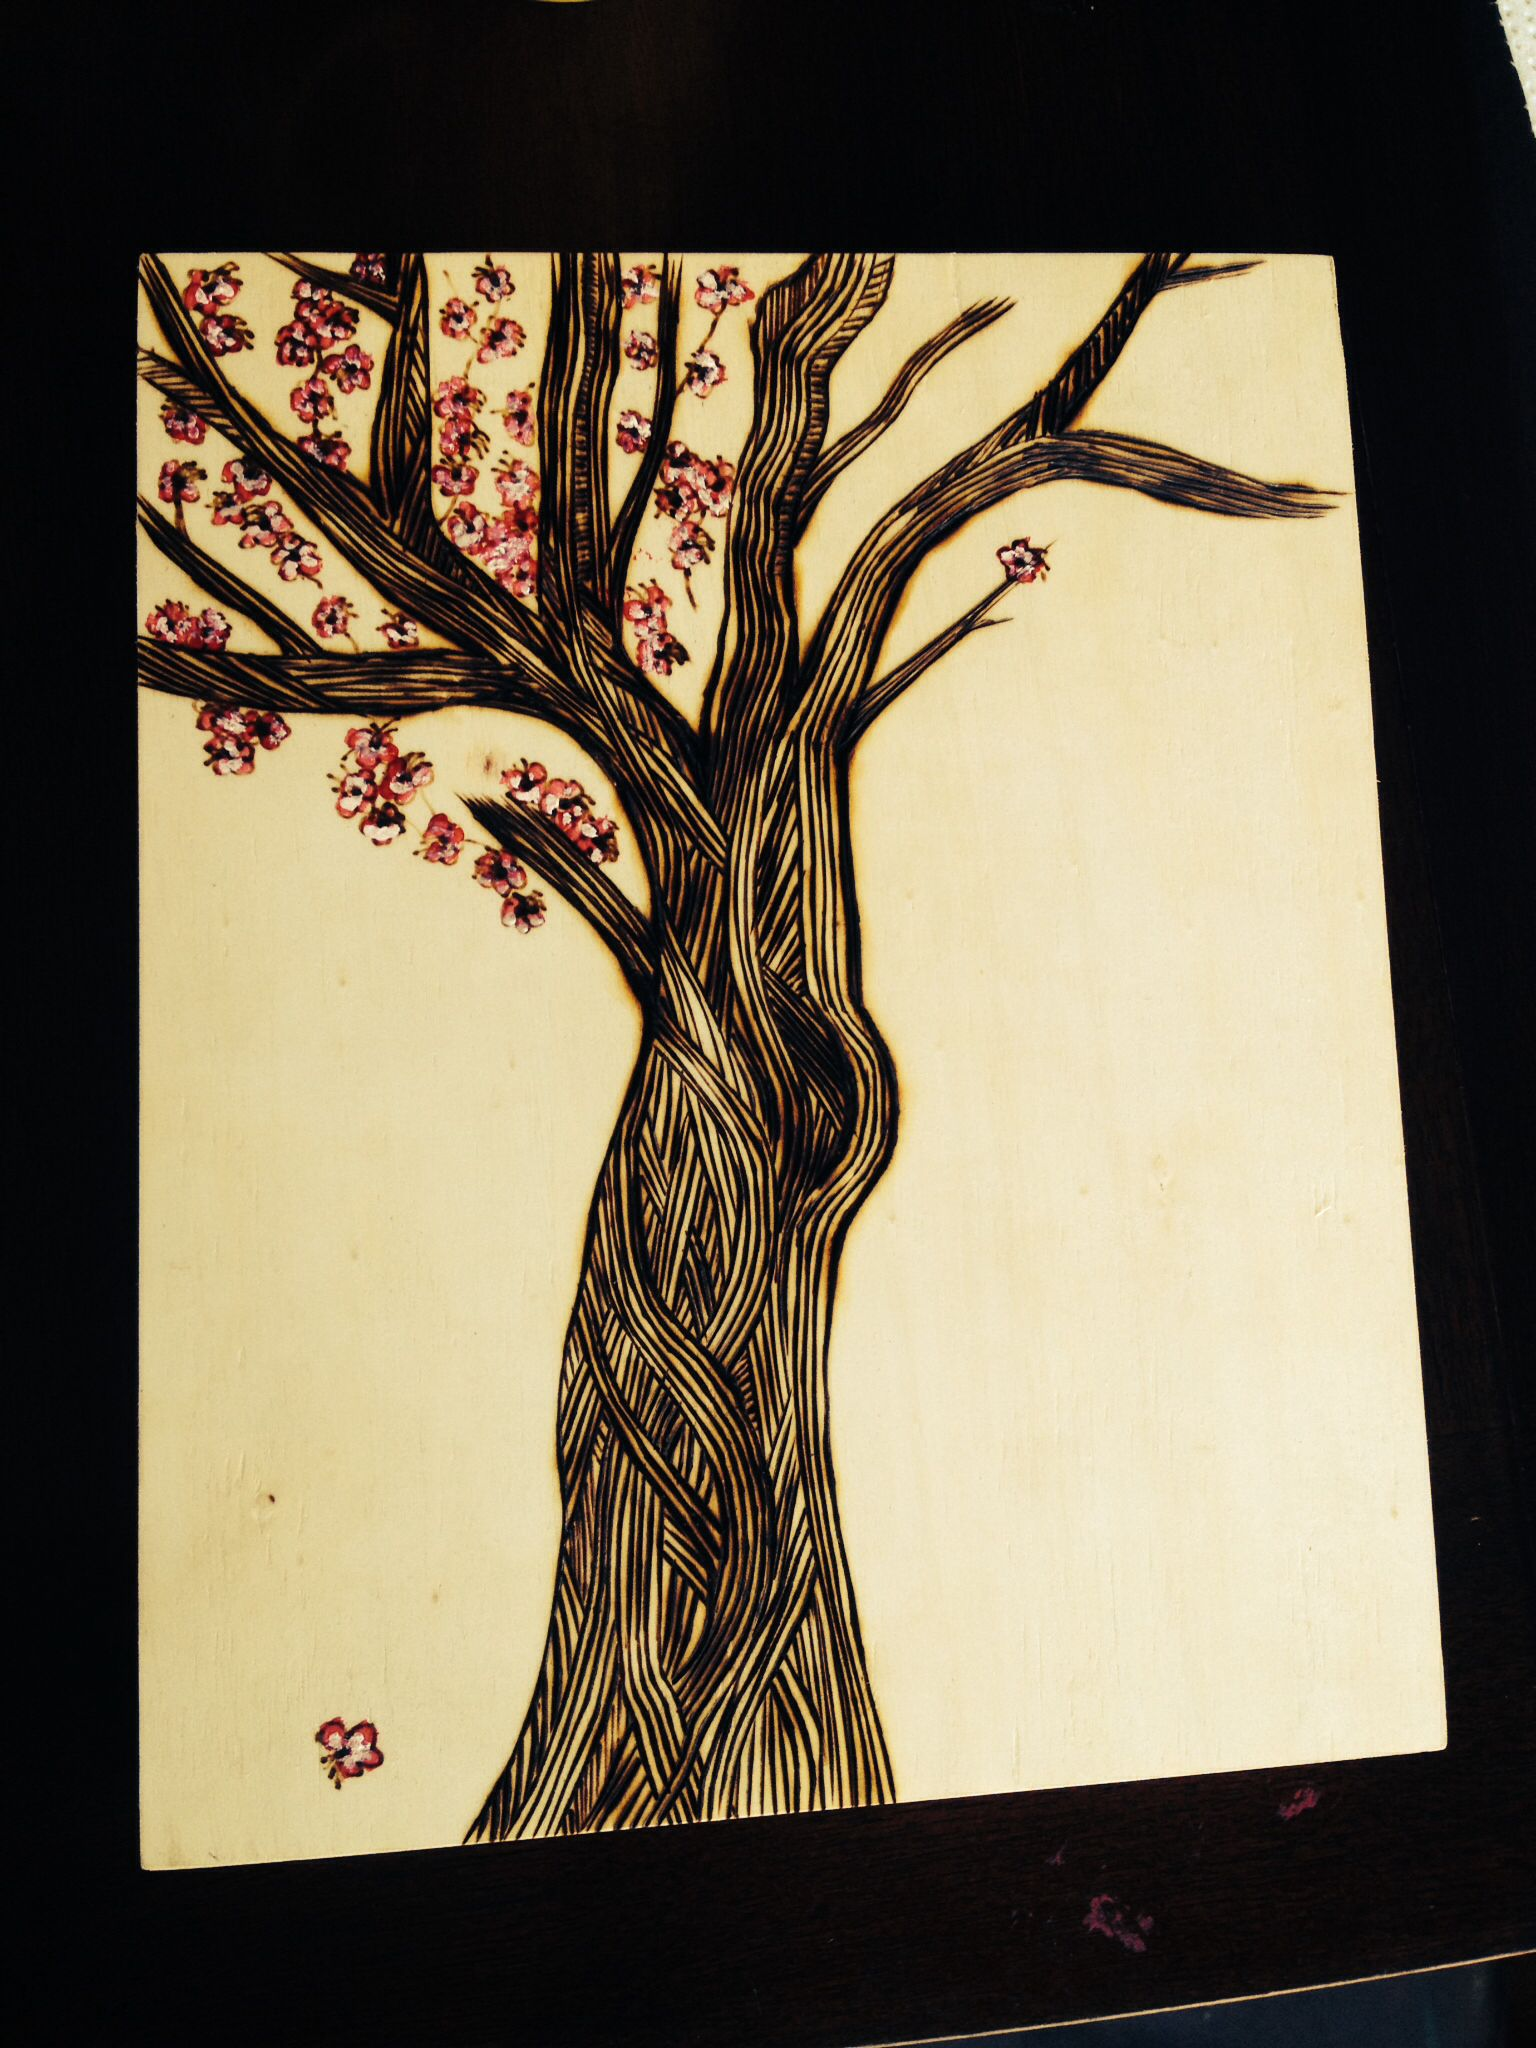 Cherry blossom woodburn and acrylic in 2019.